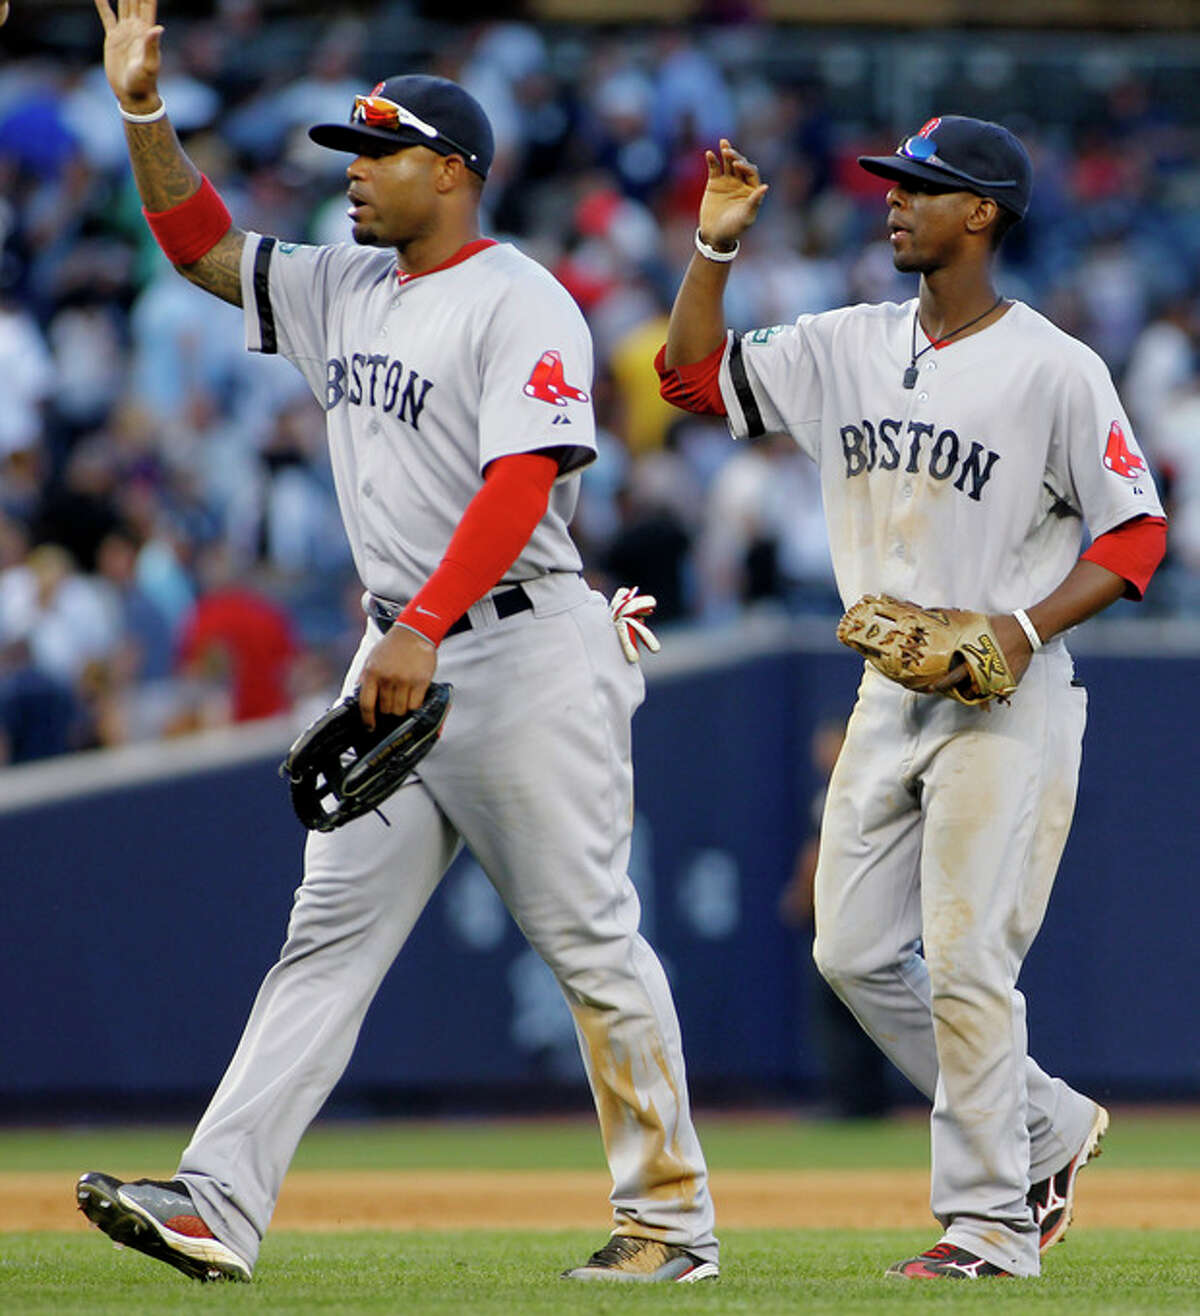 Boston Red Sox's Carl Crawford (13) and Pedro Ciriaco (77) celebrate Boston's 4-1 win over the New York Yankees in a baseball game, Saturday, Aug. 18, 2012, at Yankee Stadium in New York. (AP Photo/John Dunn)